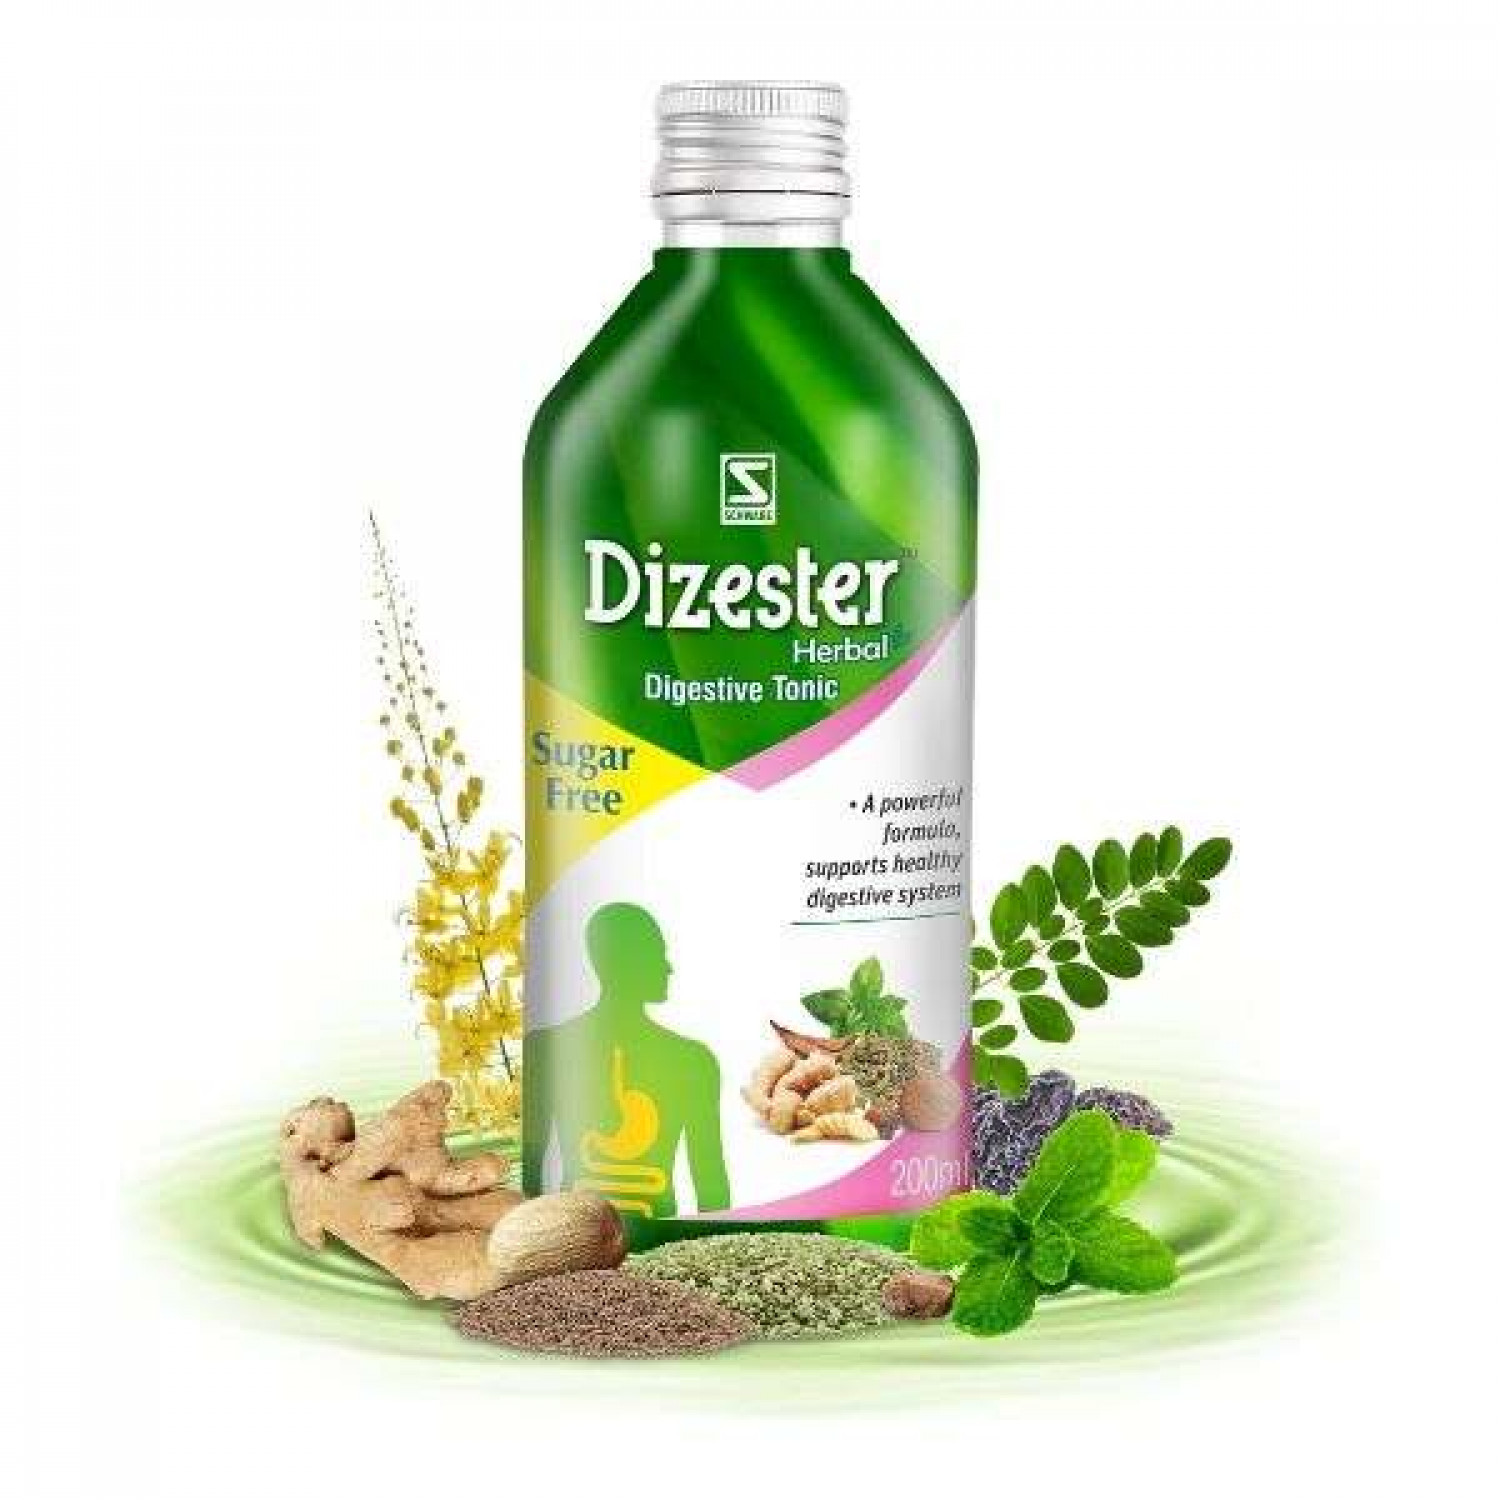 Dizester Herbal - Digestive Tonic - Schwabe India Infographic